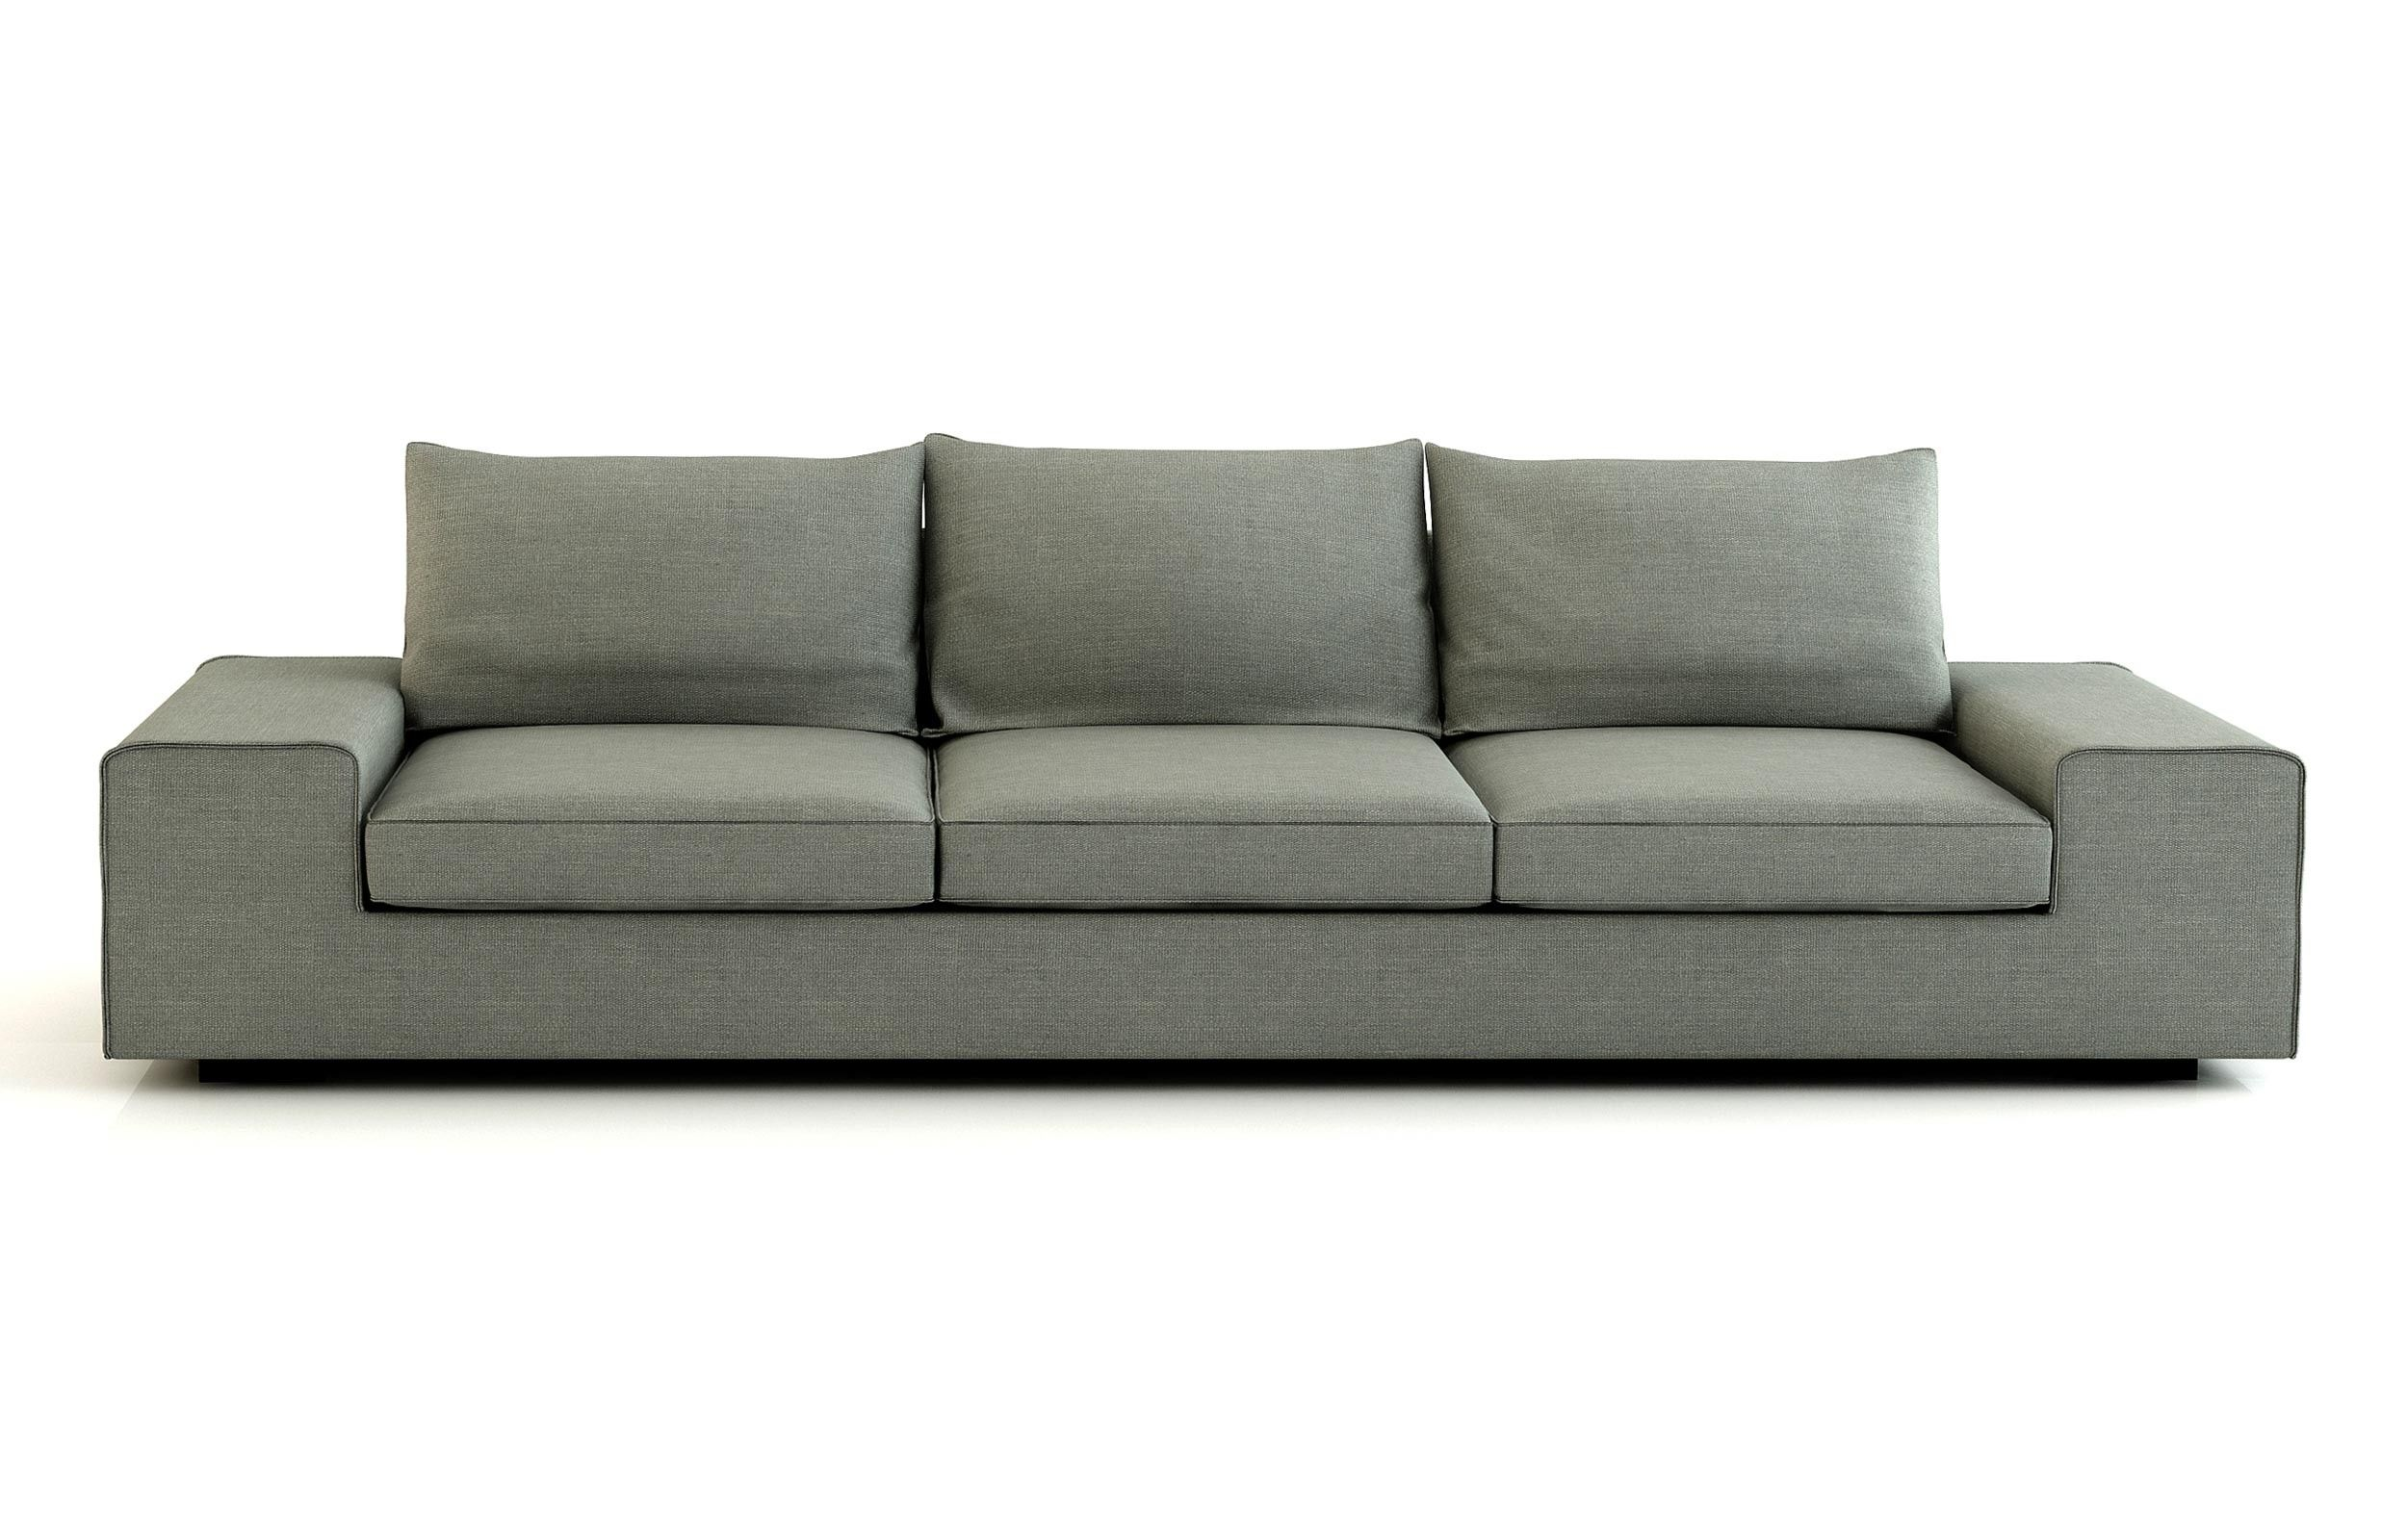 Blumen Sofa With Images Sofa - Blumensofa